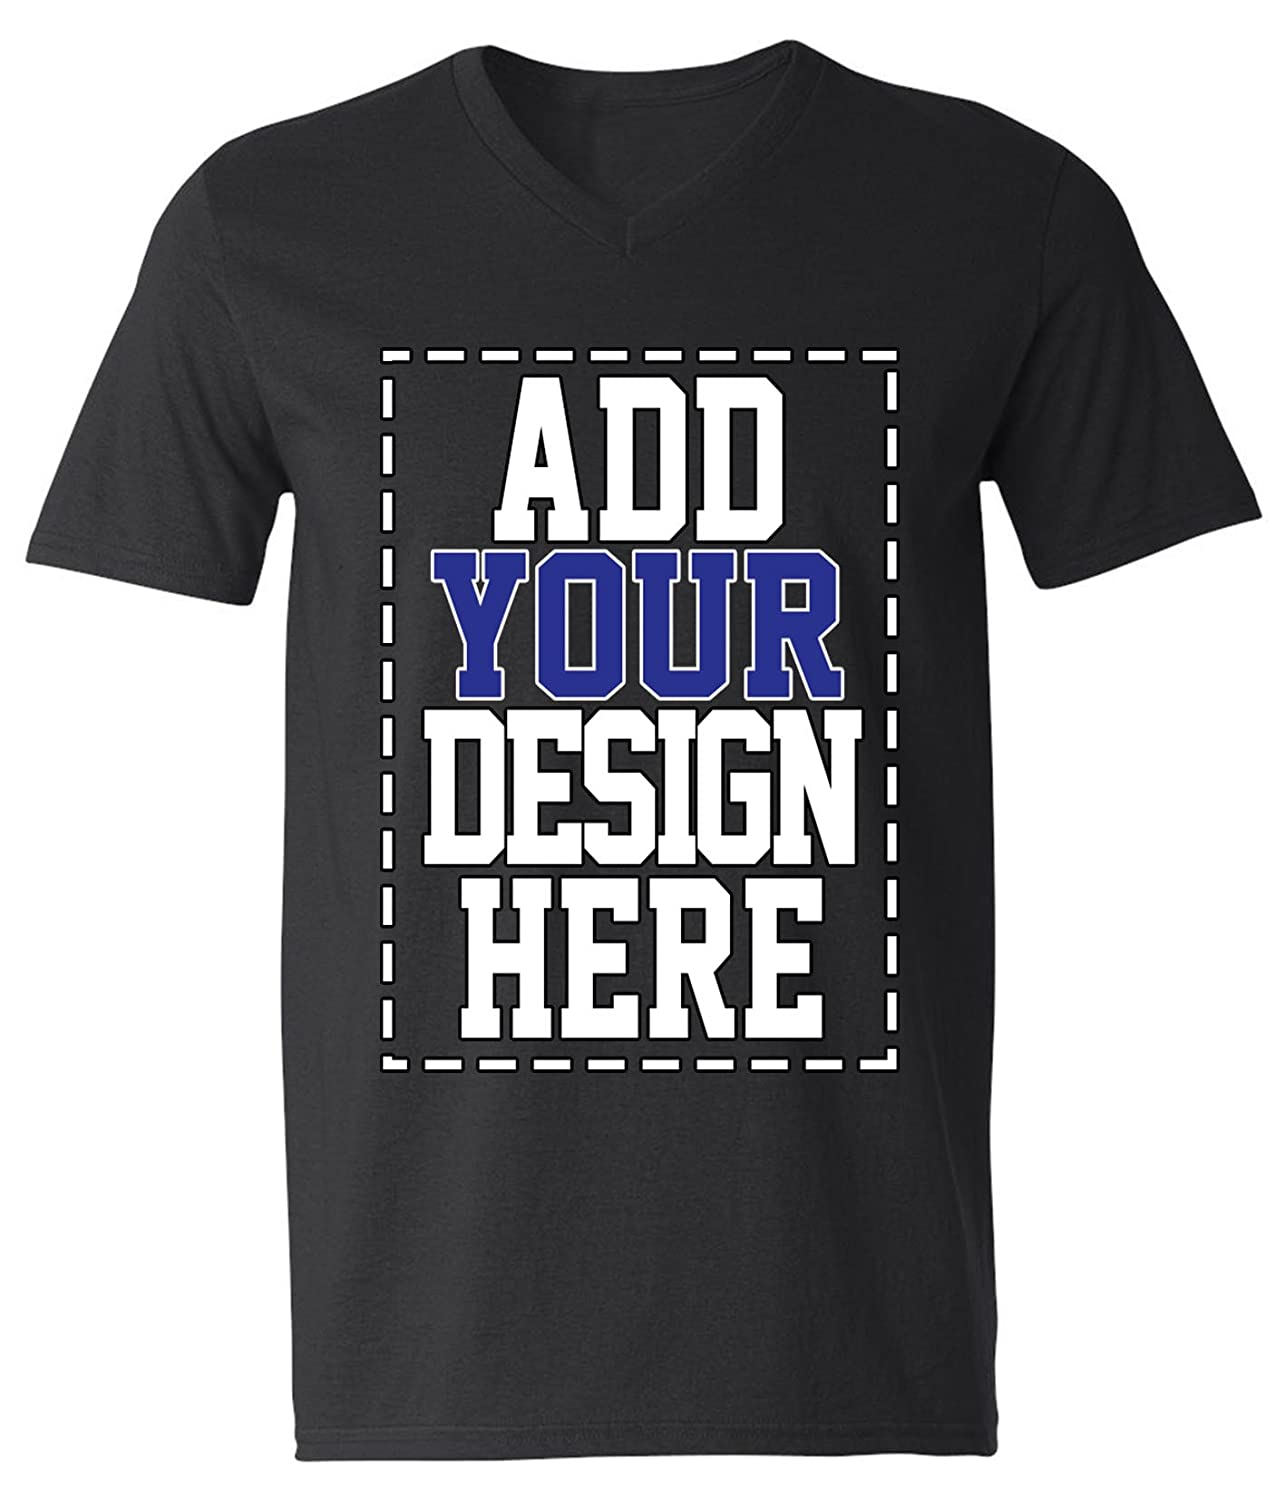 d2c6f5a2e Amazon.com: Custom V Neck T Shirts for Men - Make Your OWN Shirt - Add Your  Design Picture Photo Text Printing: Clothing